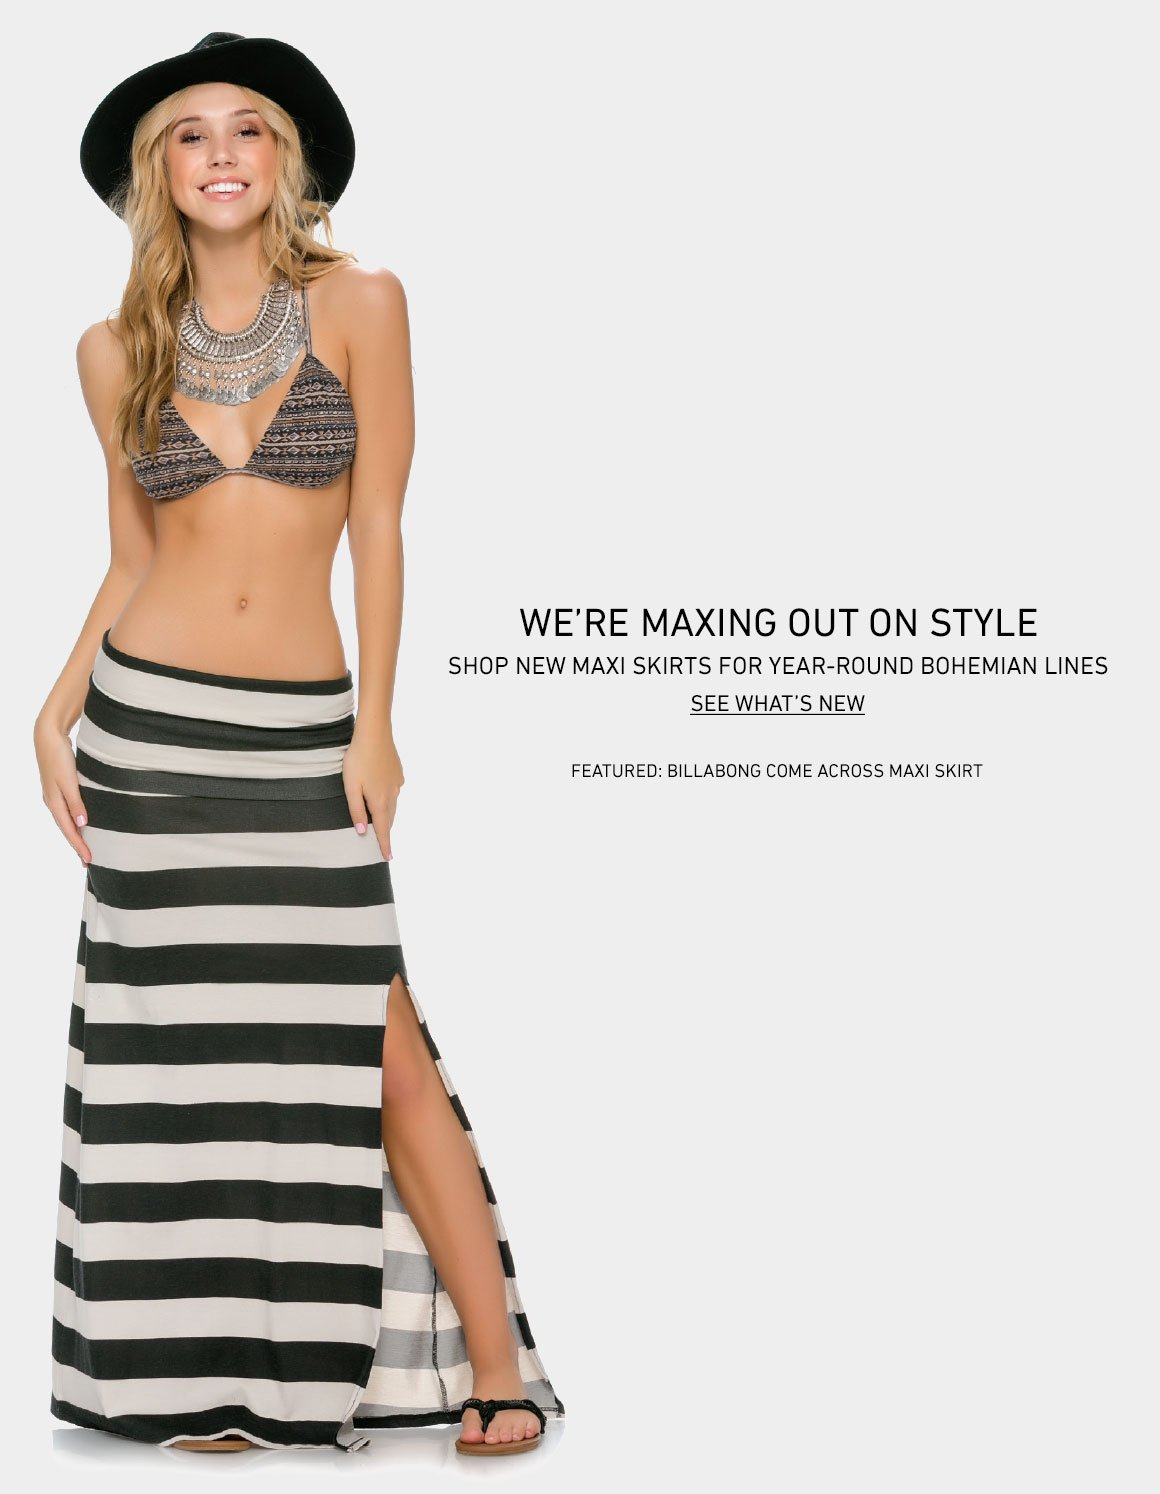 Max Out On Style: Shop New Skirts